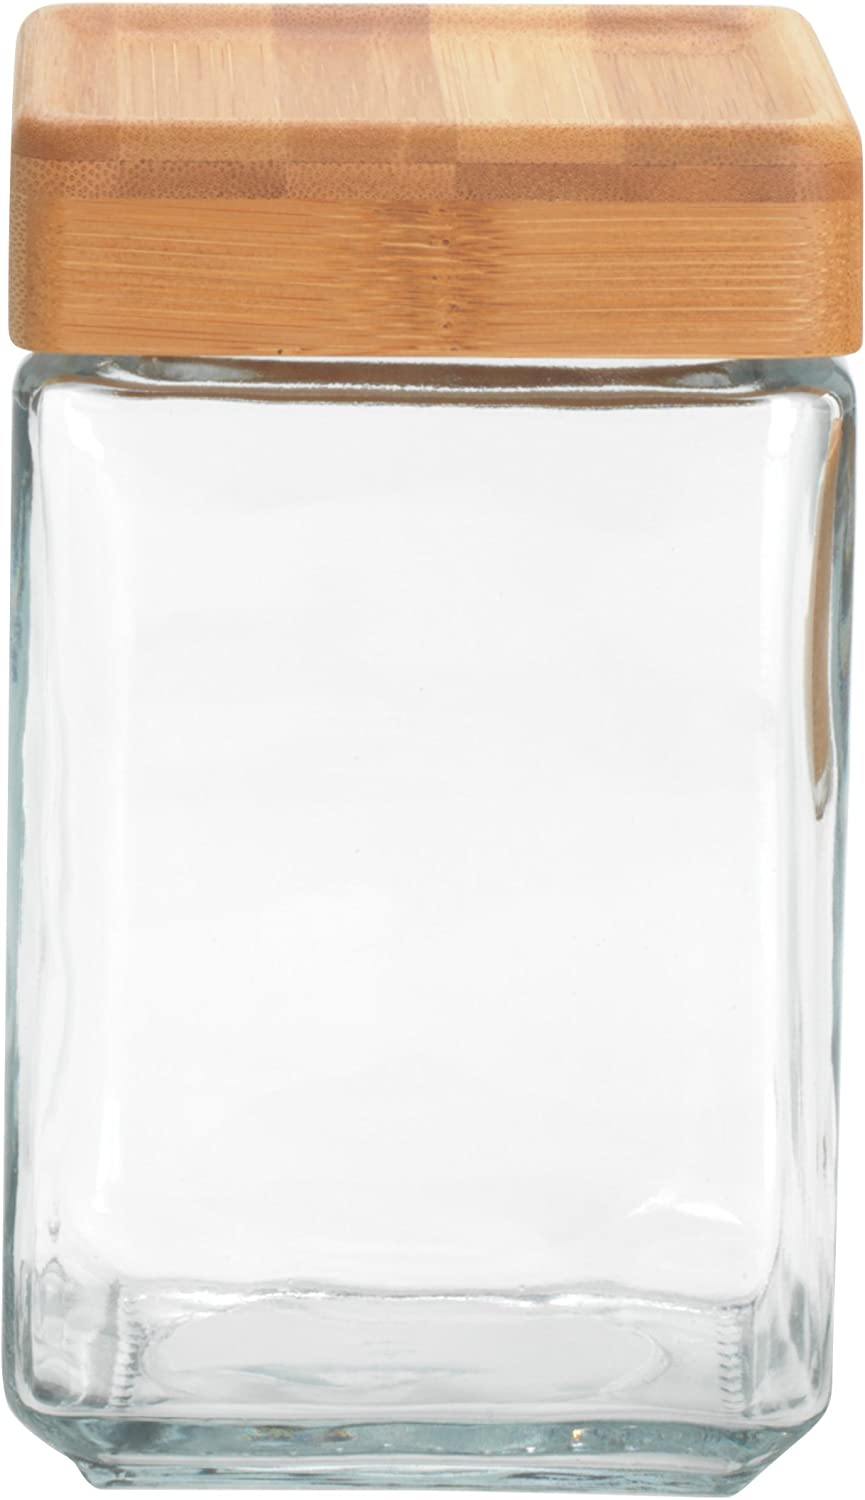 Anchor Hocking 1.5-Quart Stackable Jars with Bamboo Lids, Set of 4